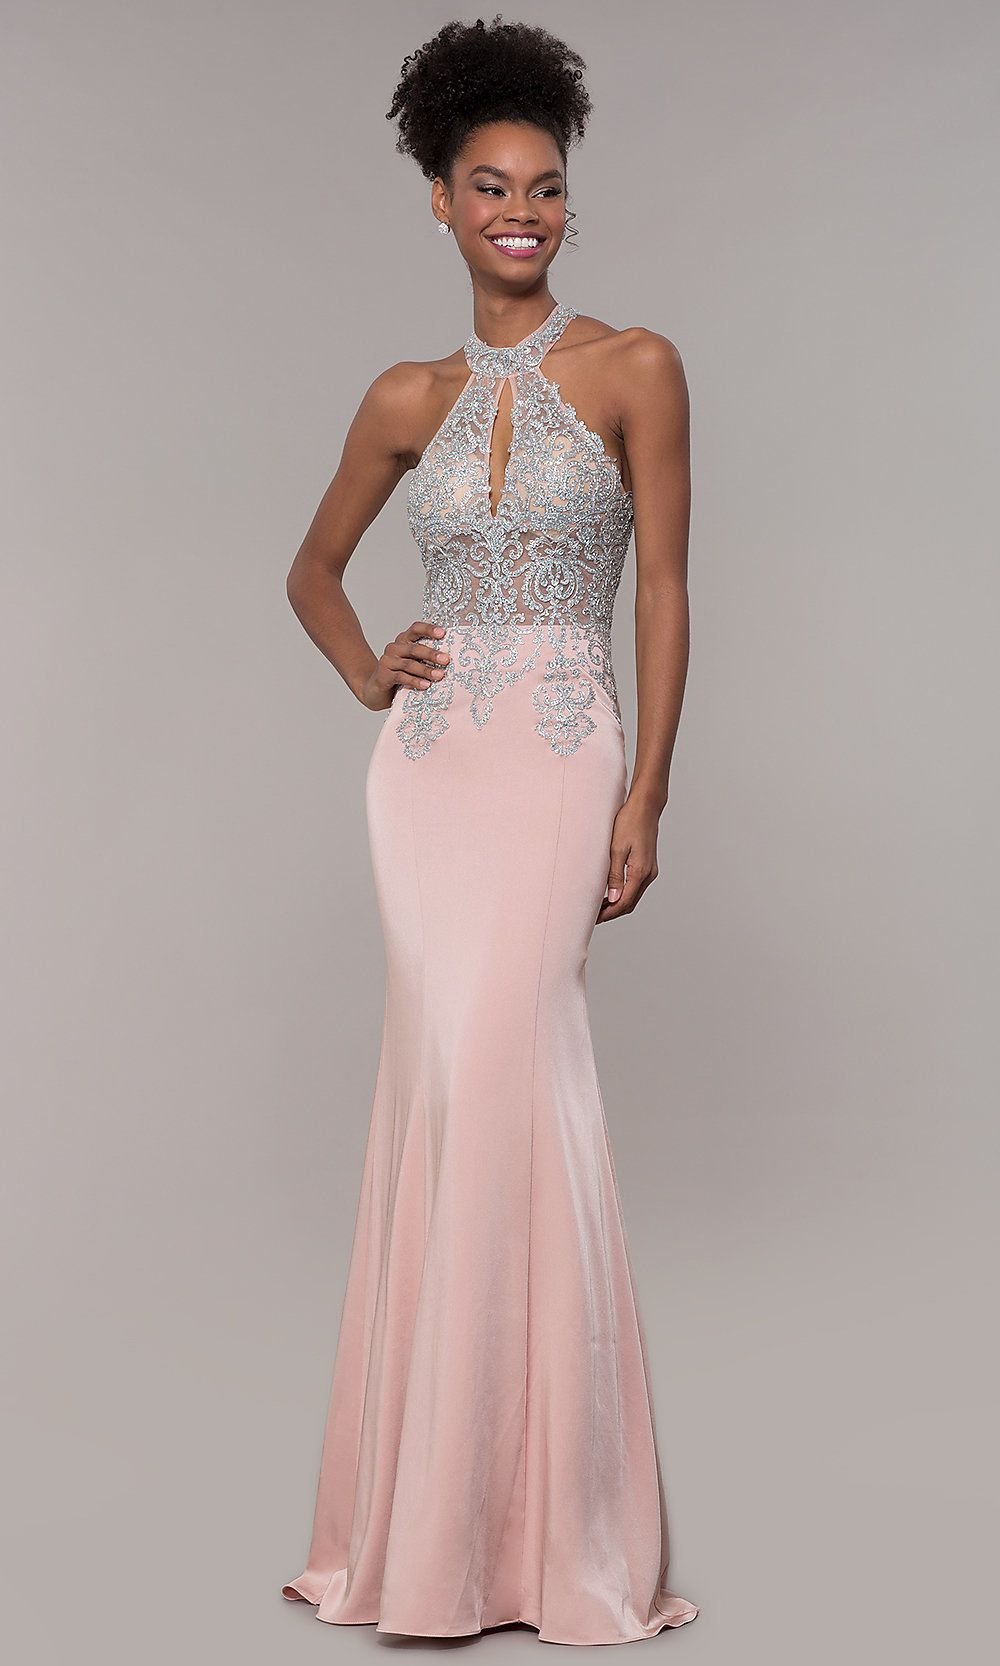 9880b00d95 High-Neck Embroidered JVNX by Jovani Long Prom Dress in 2019 | Prom ...